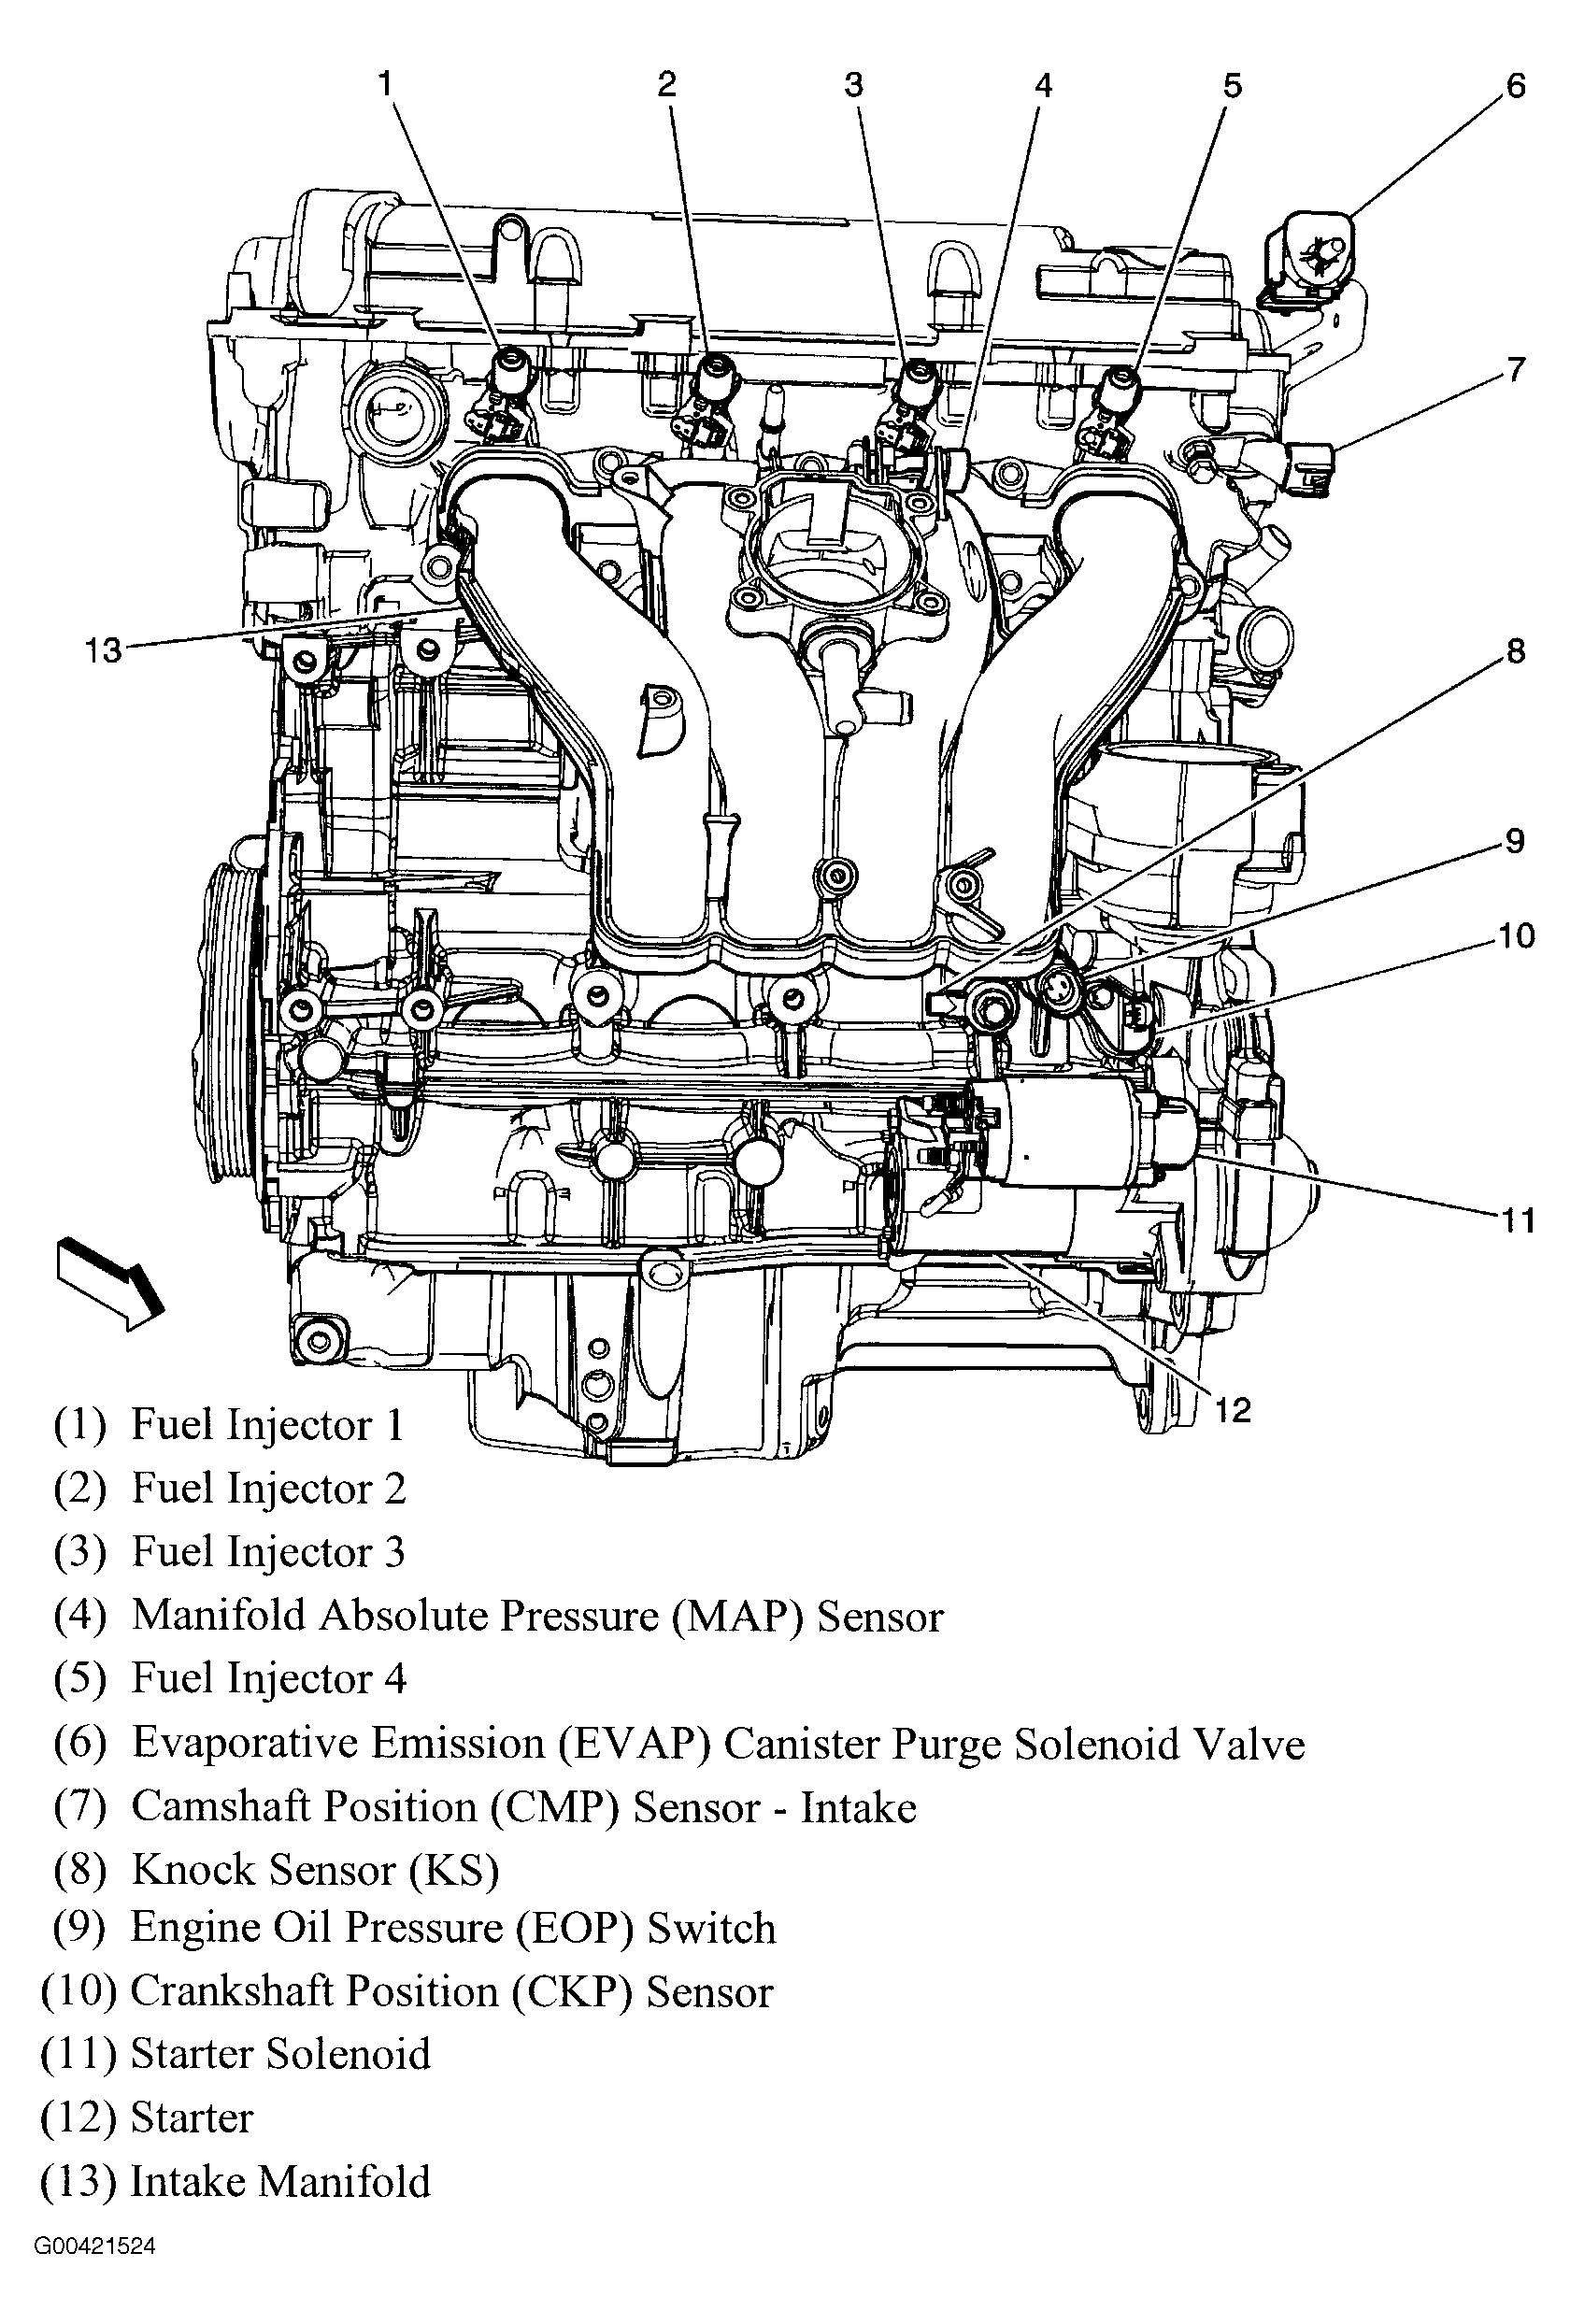 [ZHKZ_3066]  TZ_9655] Chevy Cavalier Wiring Diagram 2000 Chevy Cavalier Wiring Diagram  Download Diagram | 2000 Cavalier Engine Diagram |  | Cran Otene Cette Itis Awni Oidei Adit Itive Kapemie Aesth Jidig Isra  Mohammedshrine Librar Wiring 101